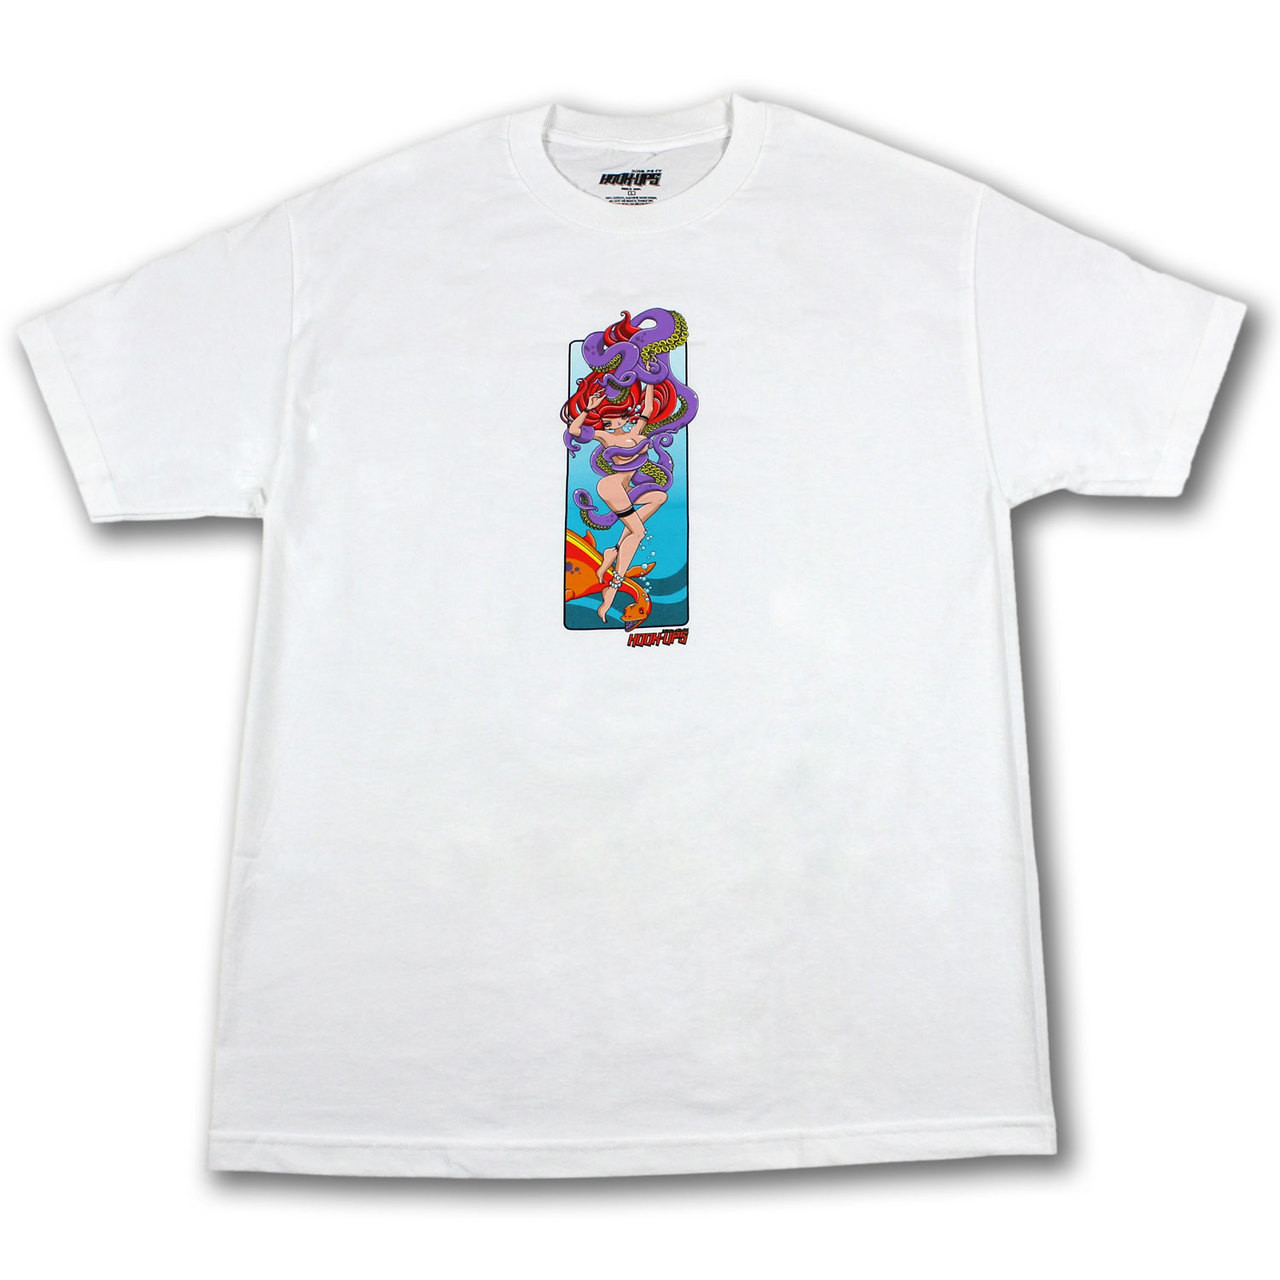 hook up skateboard t shirts Apparel / t-shirts / hook ups hook-ups skateboards was founded by professional skateboarder jeremy klein in 1994 the company was inspired by klein's passion for japanese anime, girls, video games, ice.